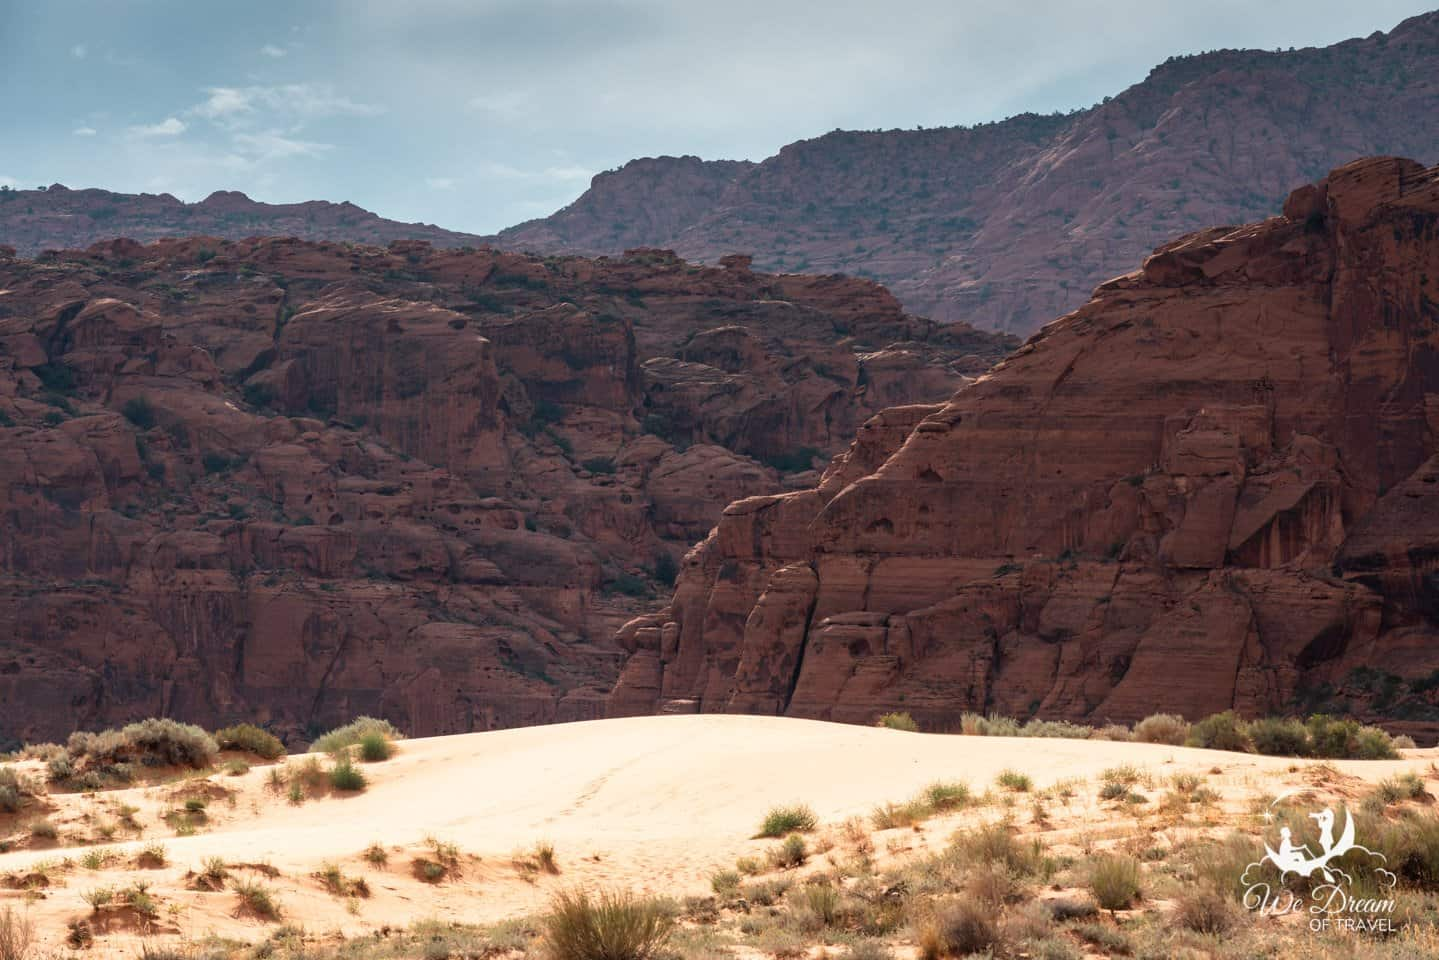 Sand dunes against a background of red rock in Snow Canyon.